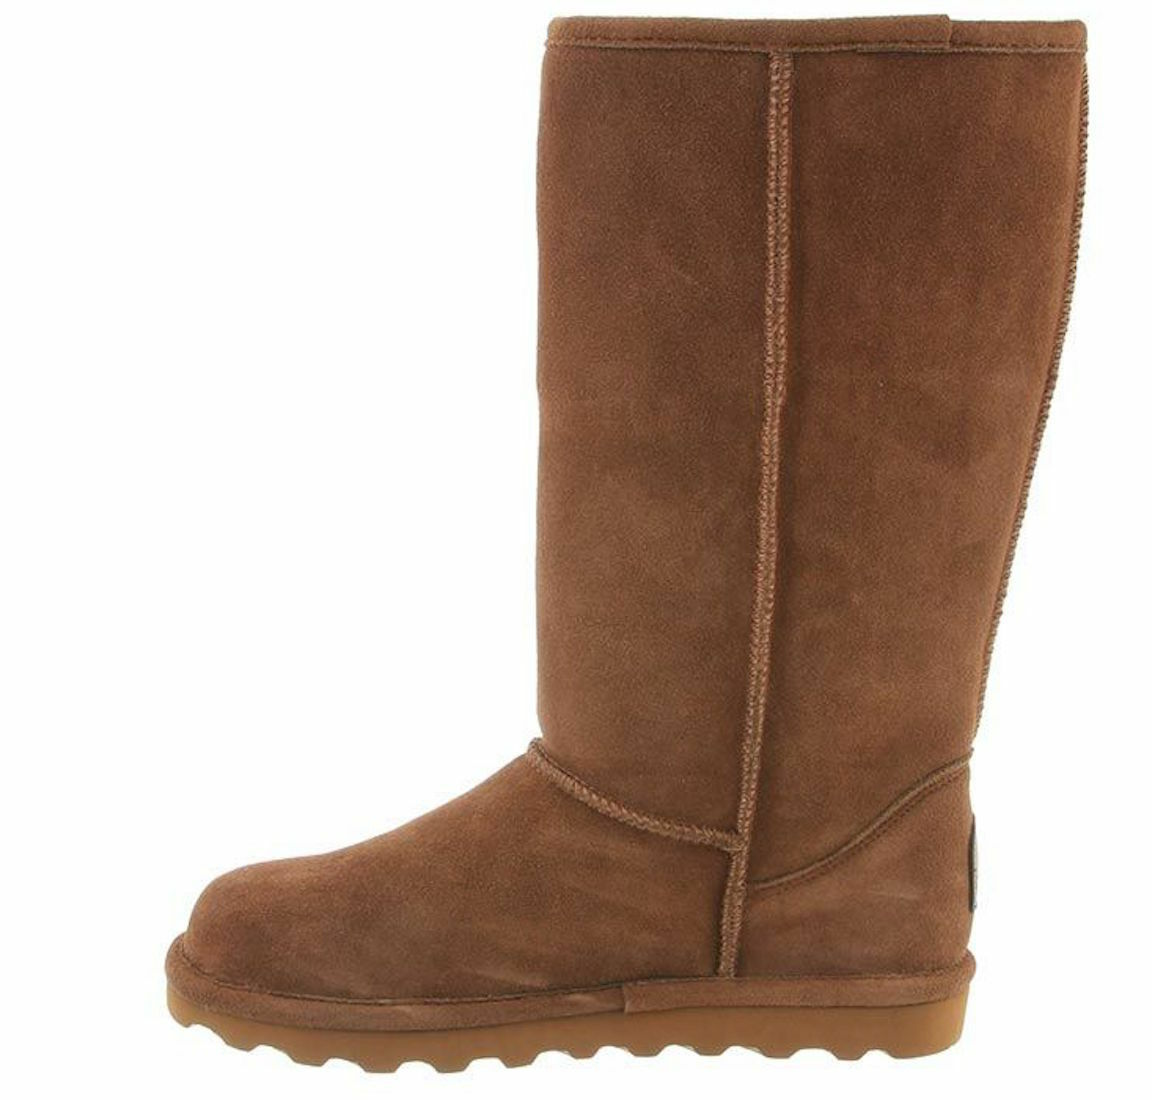 Womens Bearpaw Elle Tall Winter Boots - Hickory Suede [1963W]